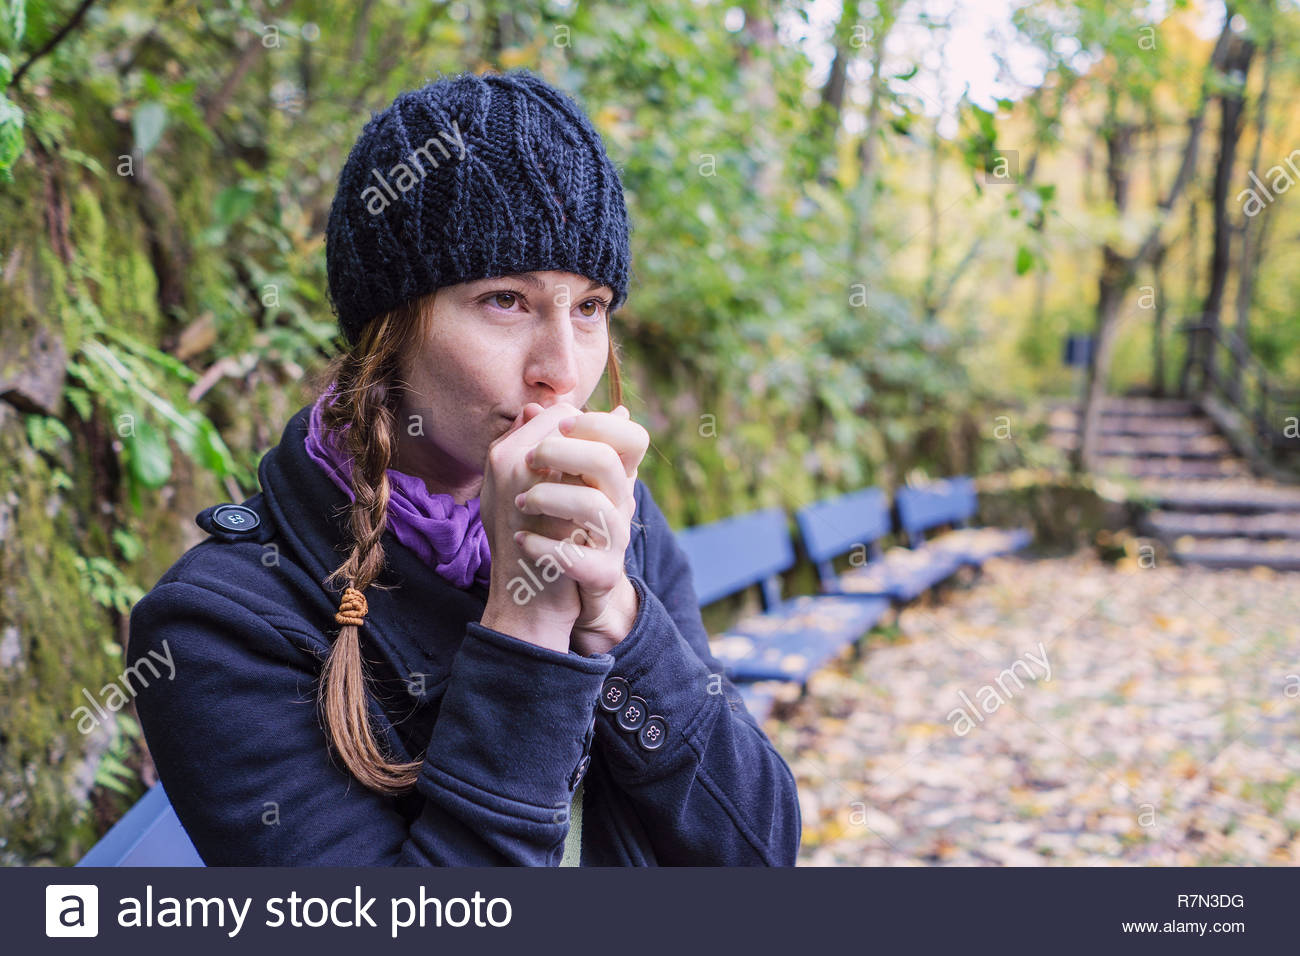 Solo woman traveller exploring park during autumn, Montreal, Quebec, Canada - Stock Image